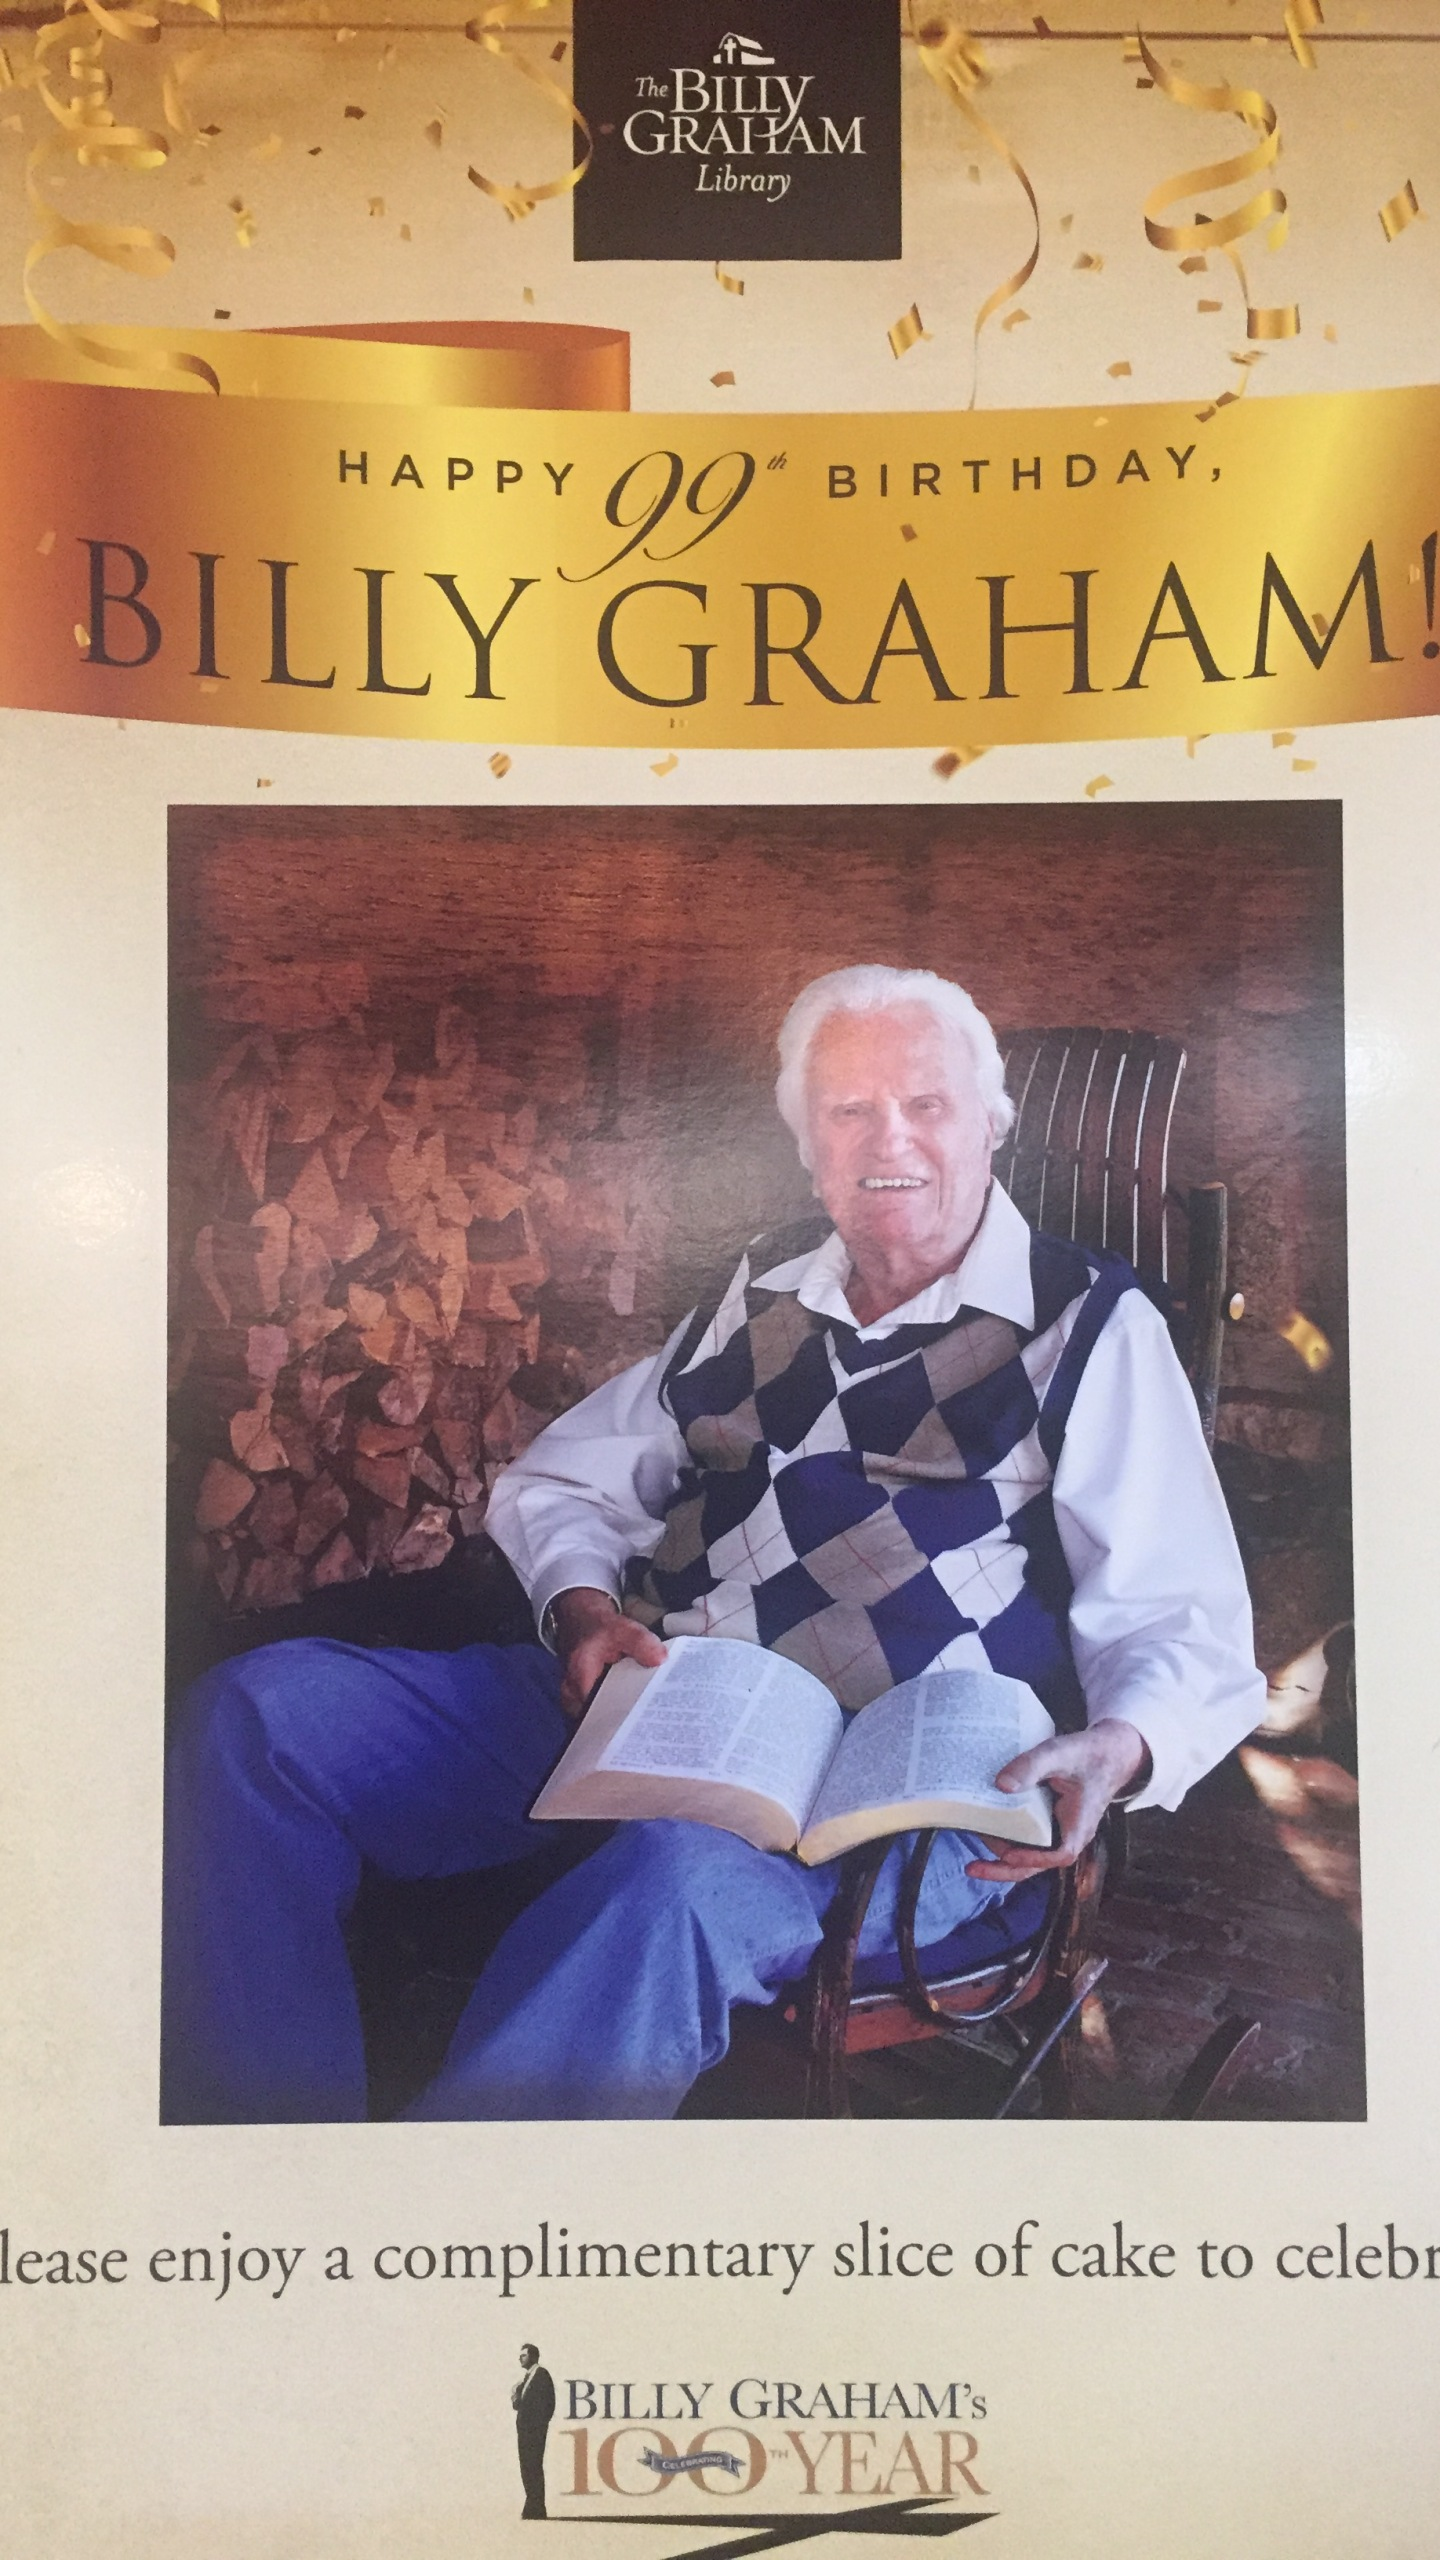 Billy Graham bday 5-banner_486264